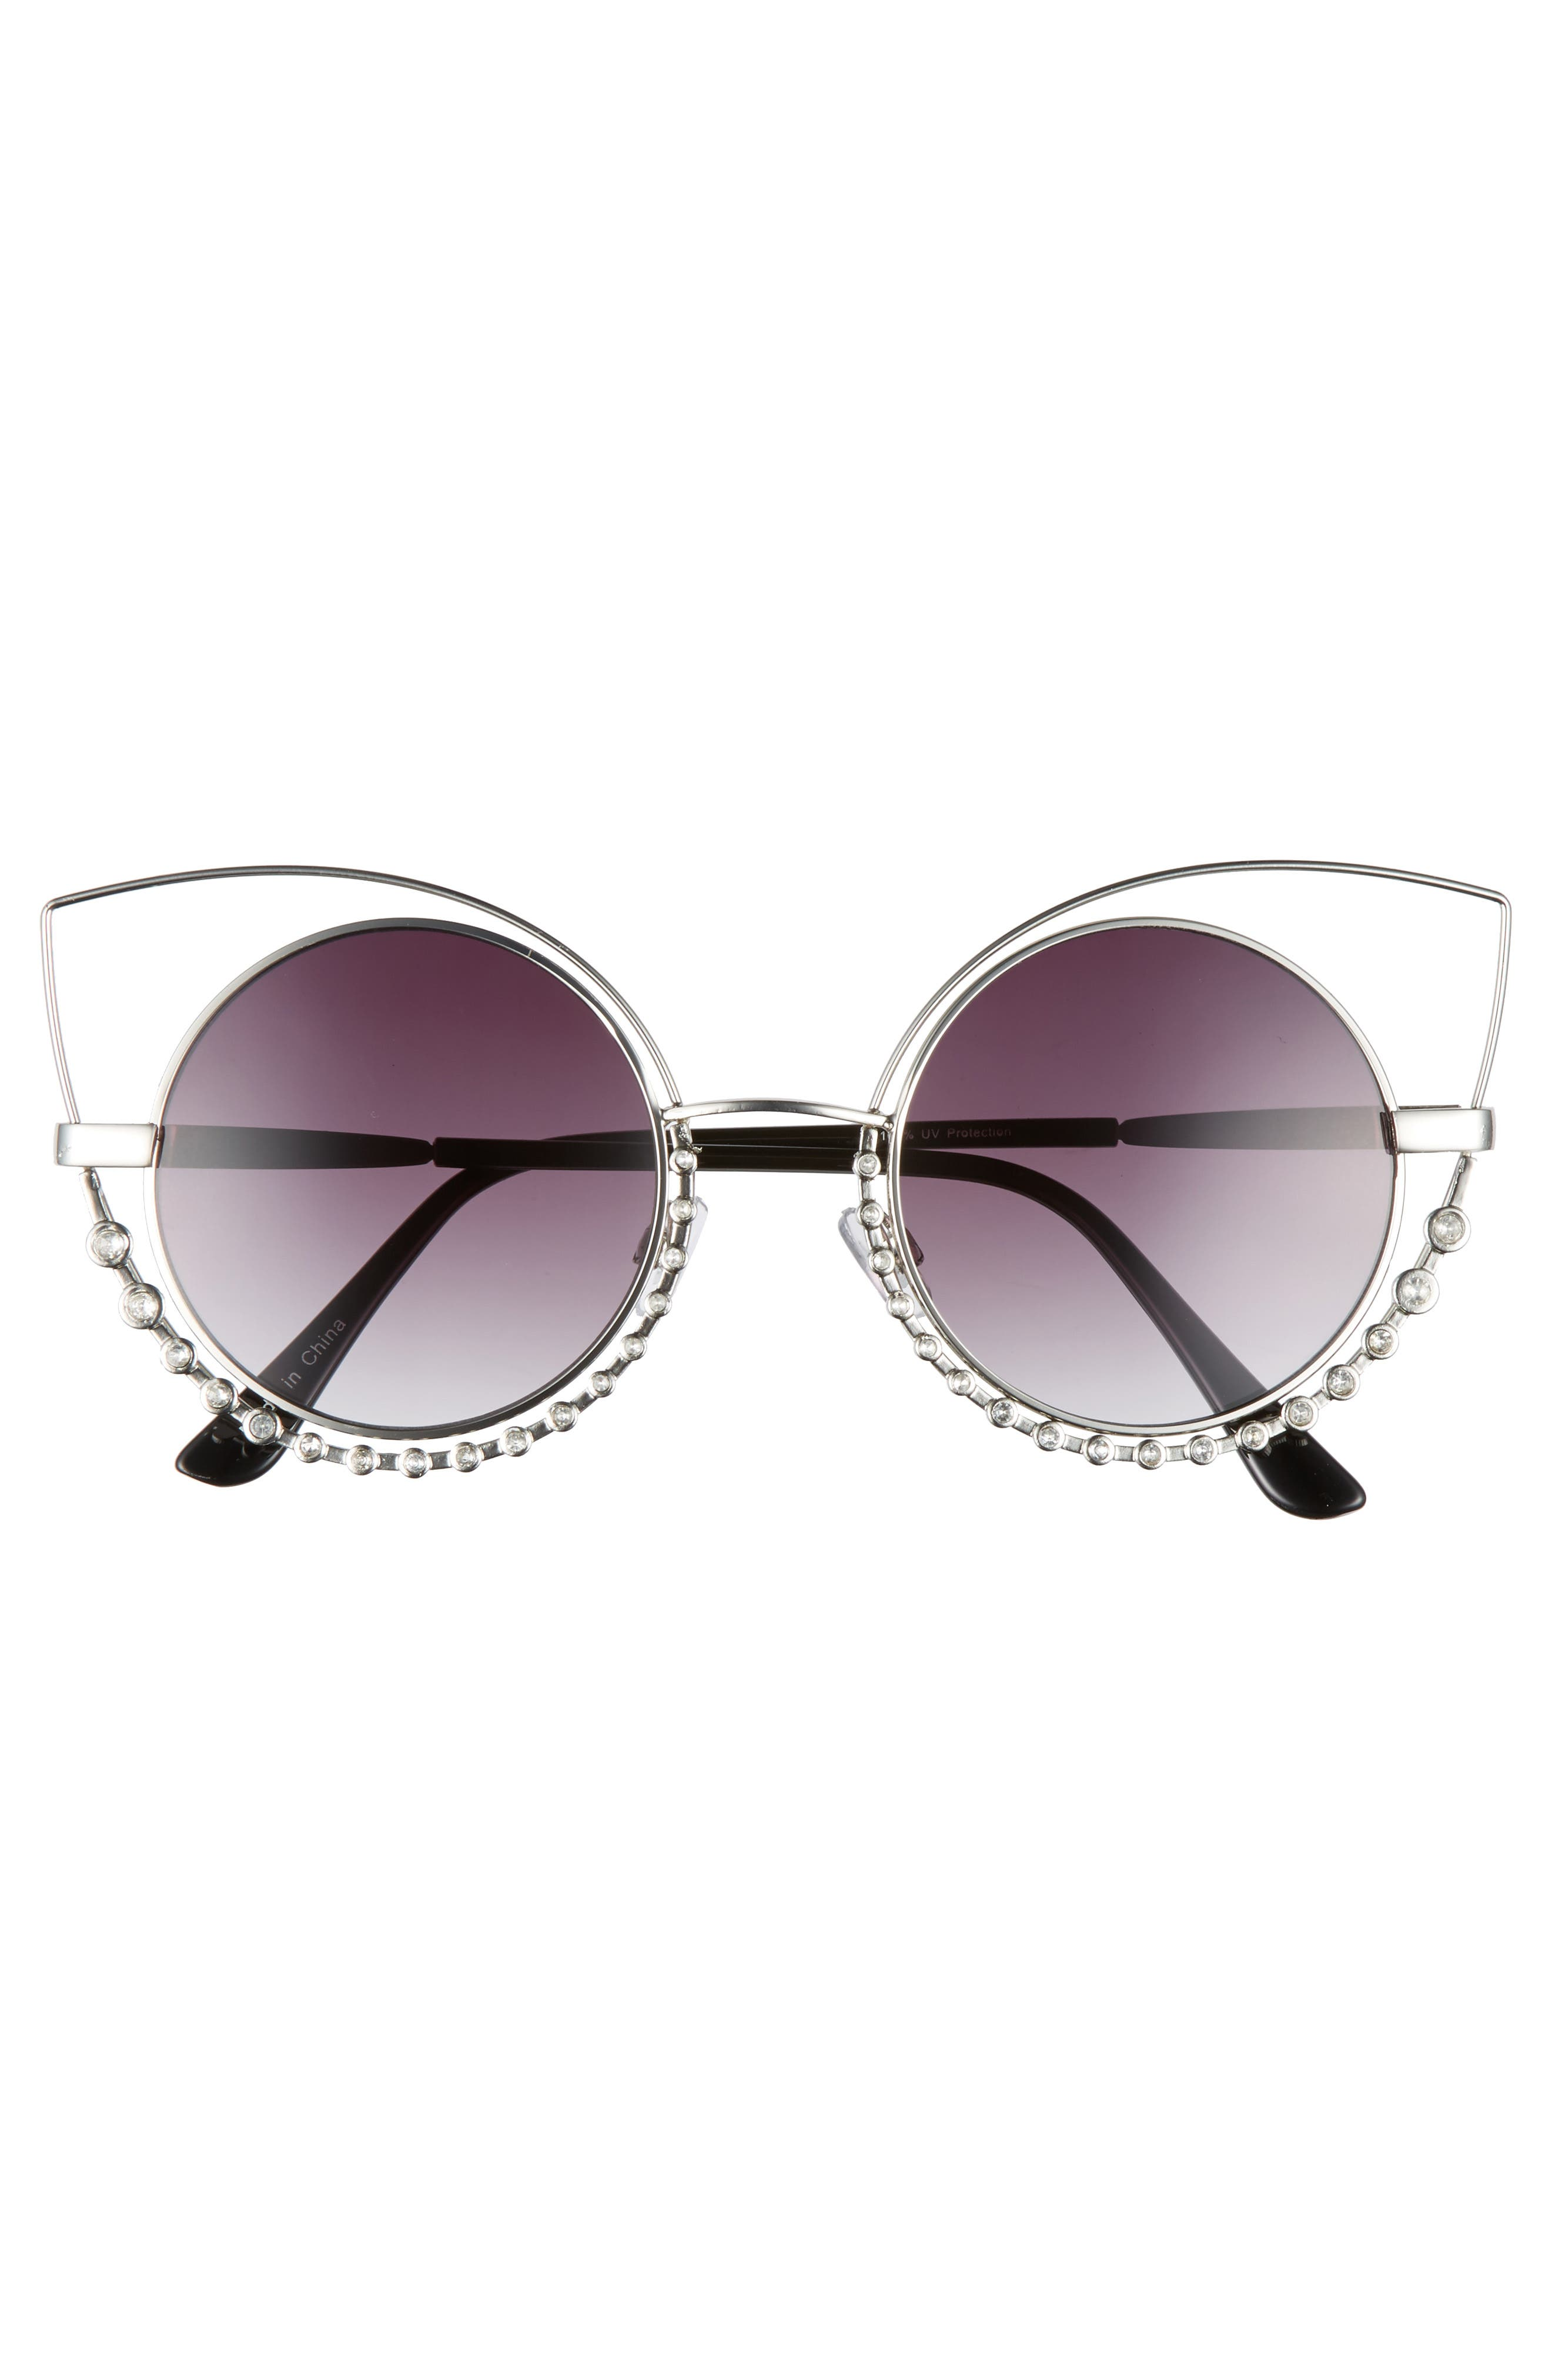 55mm Studded Round Sunglasses,                             Alternate thumbnail 3, color,                             040